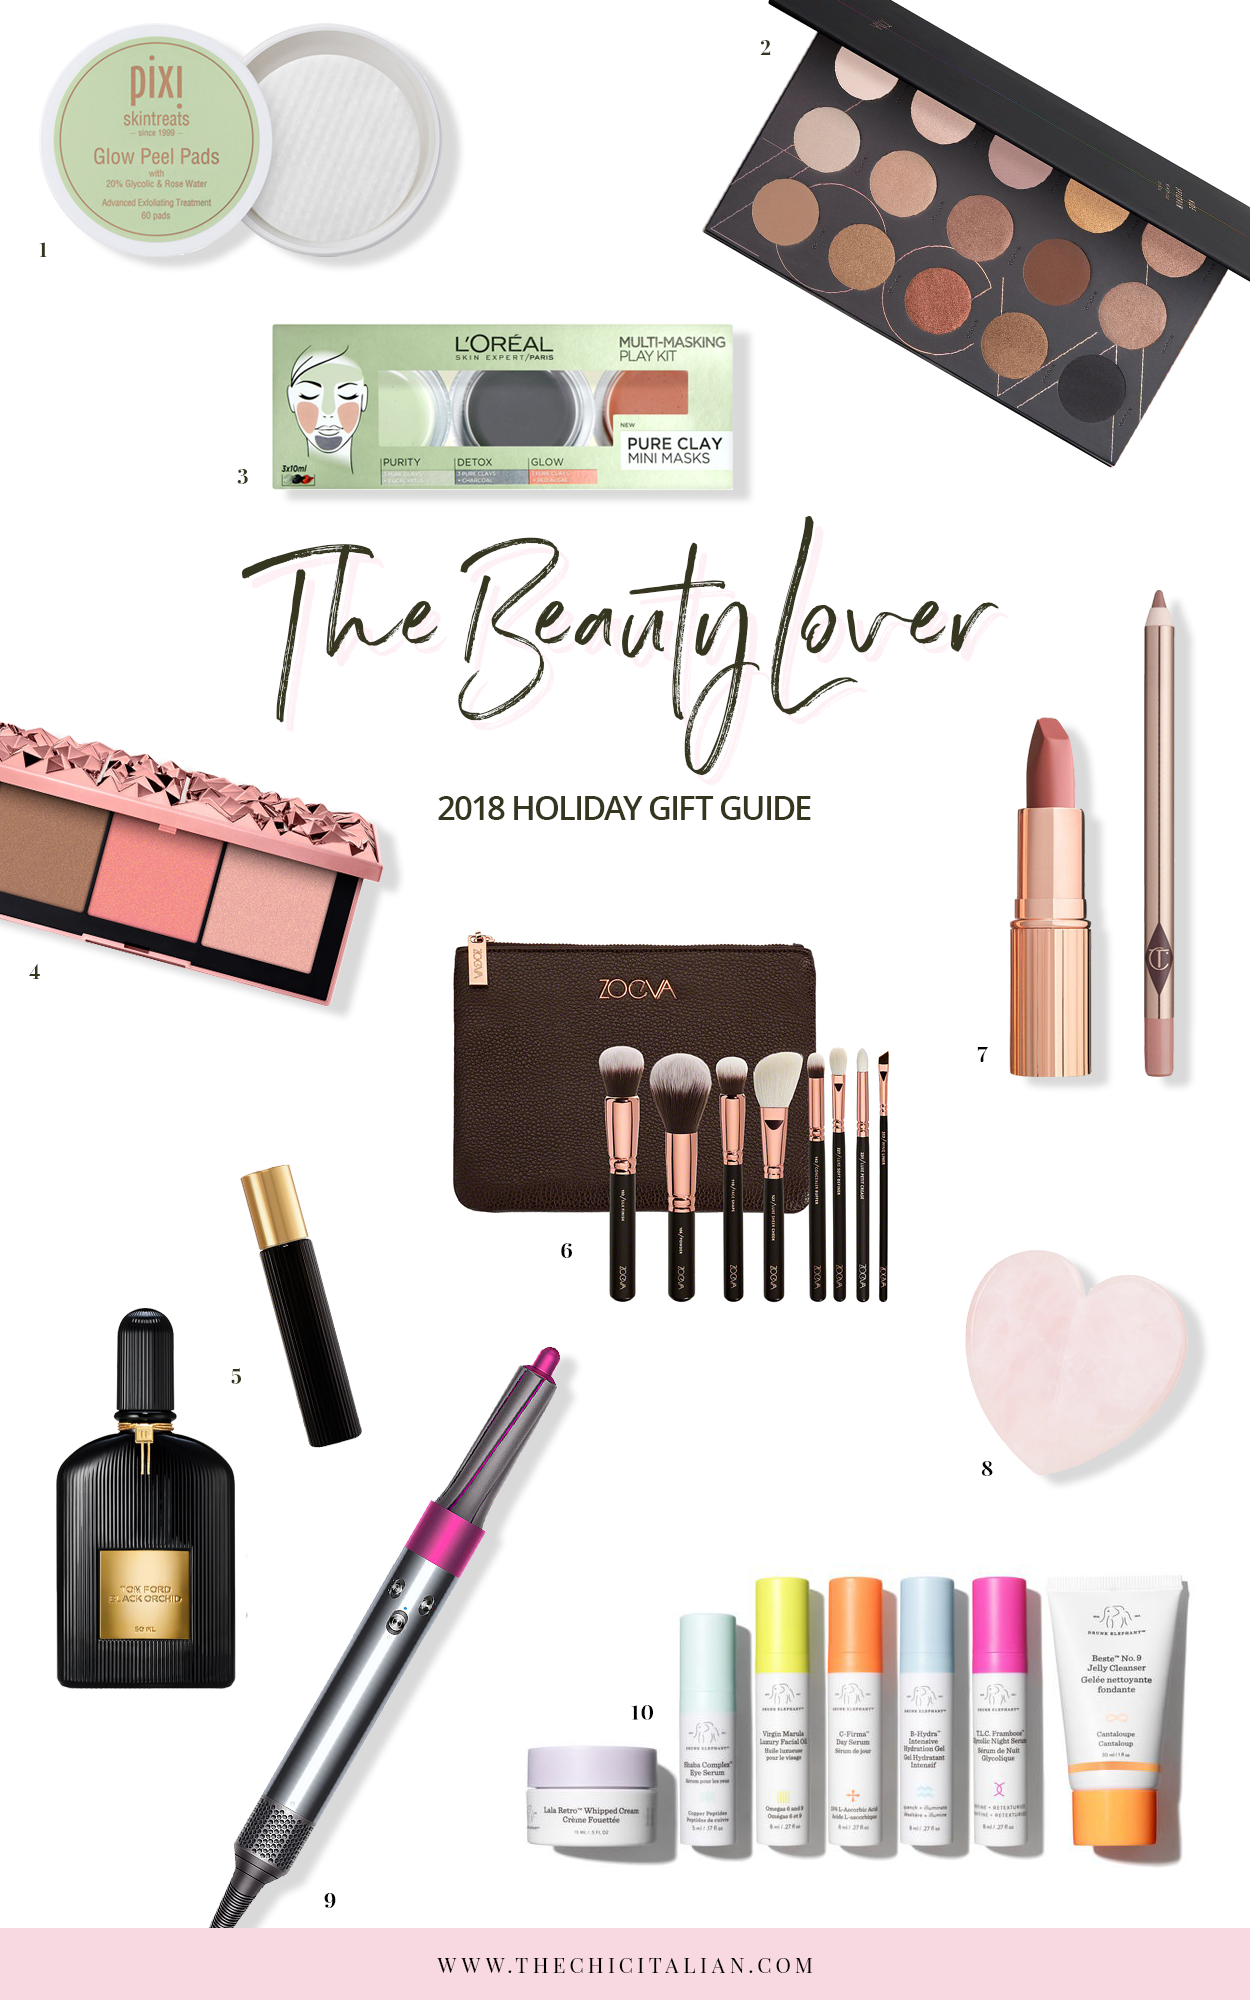 HOLIDAY GIFT GUIDE 2018 | THECHICITALIAN | The Christmas gift guide with the perfect presents for the women in your life